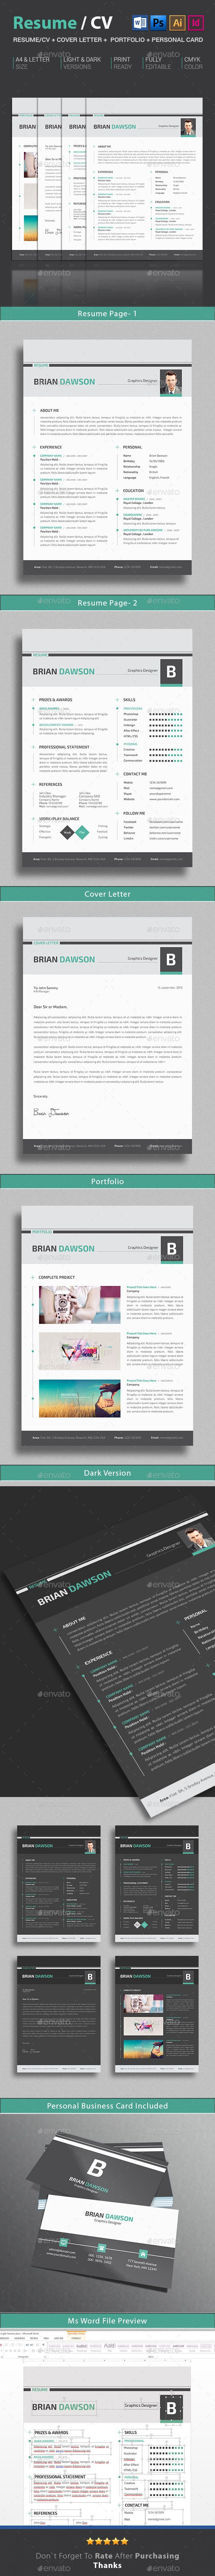 4 Page 2 Layout Resume Template Cover Letter Portfolio